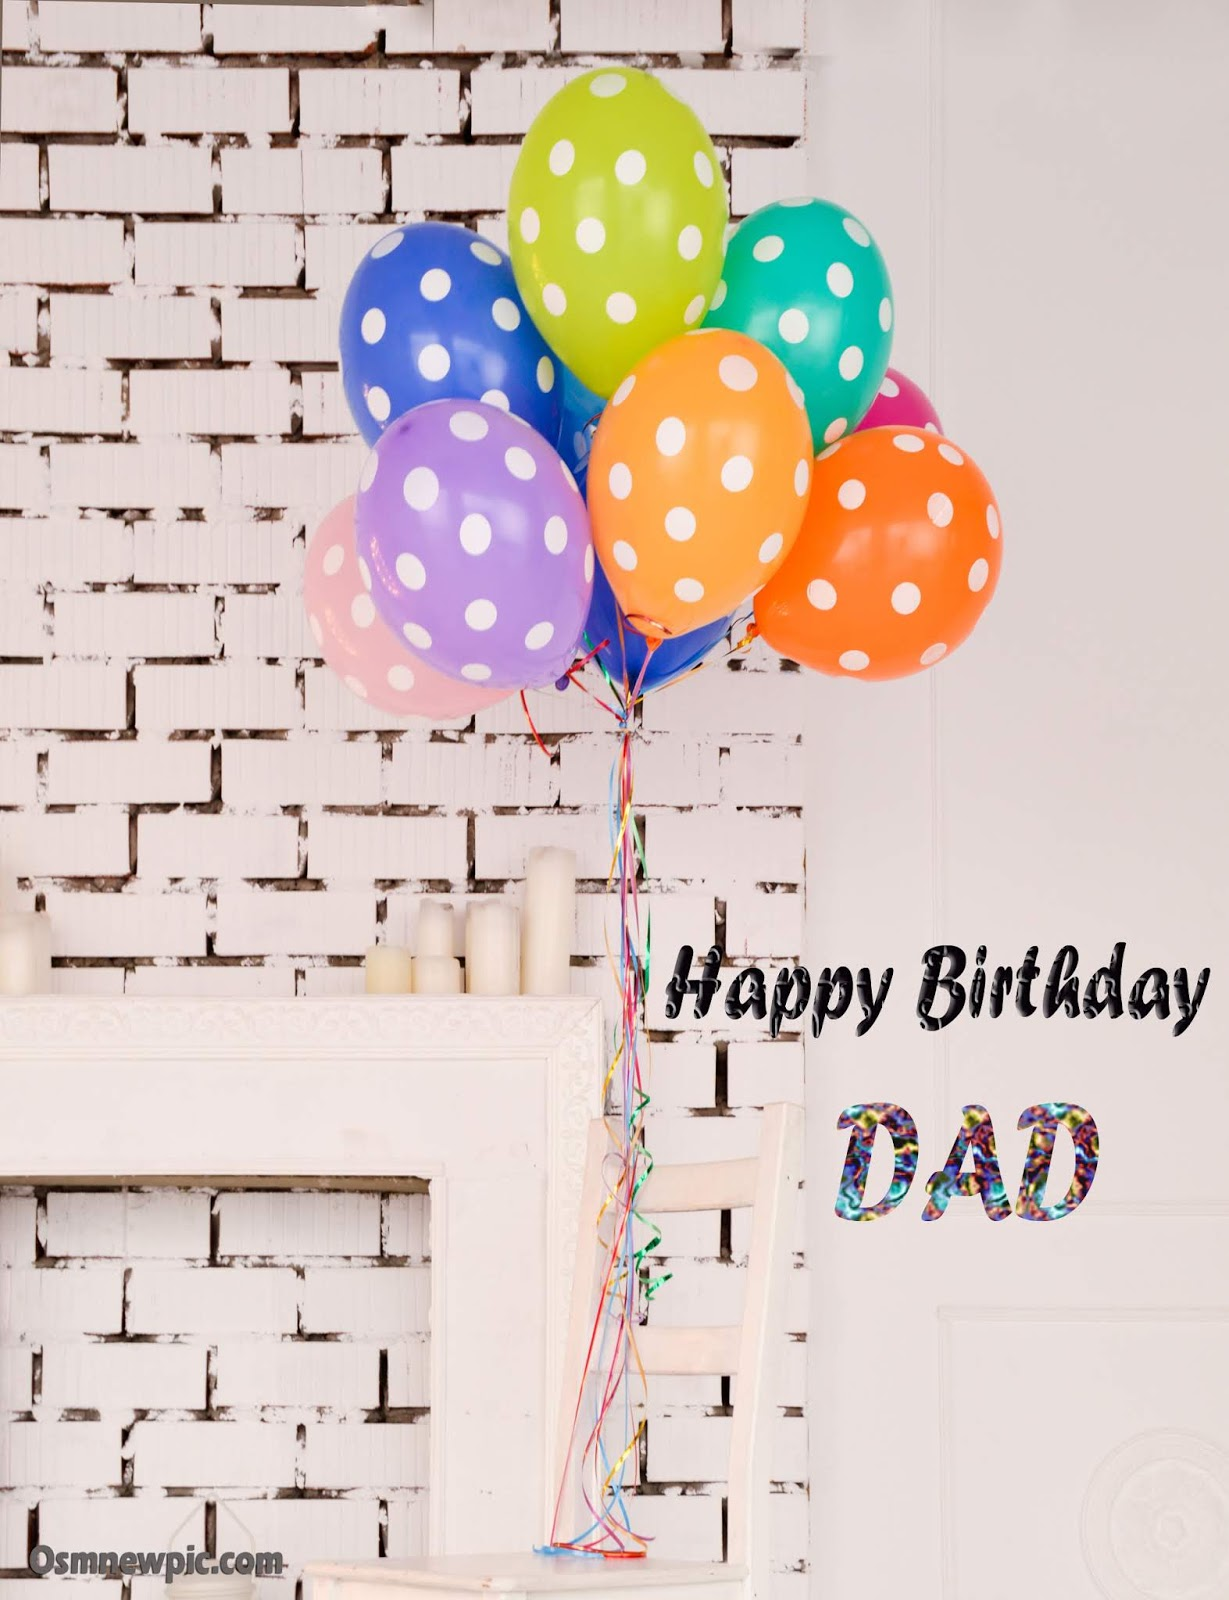 Happy Birthday Dady Wishes